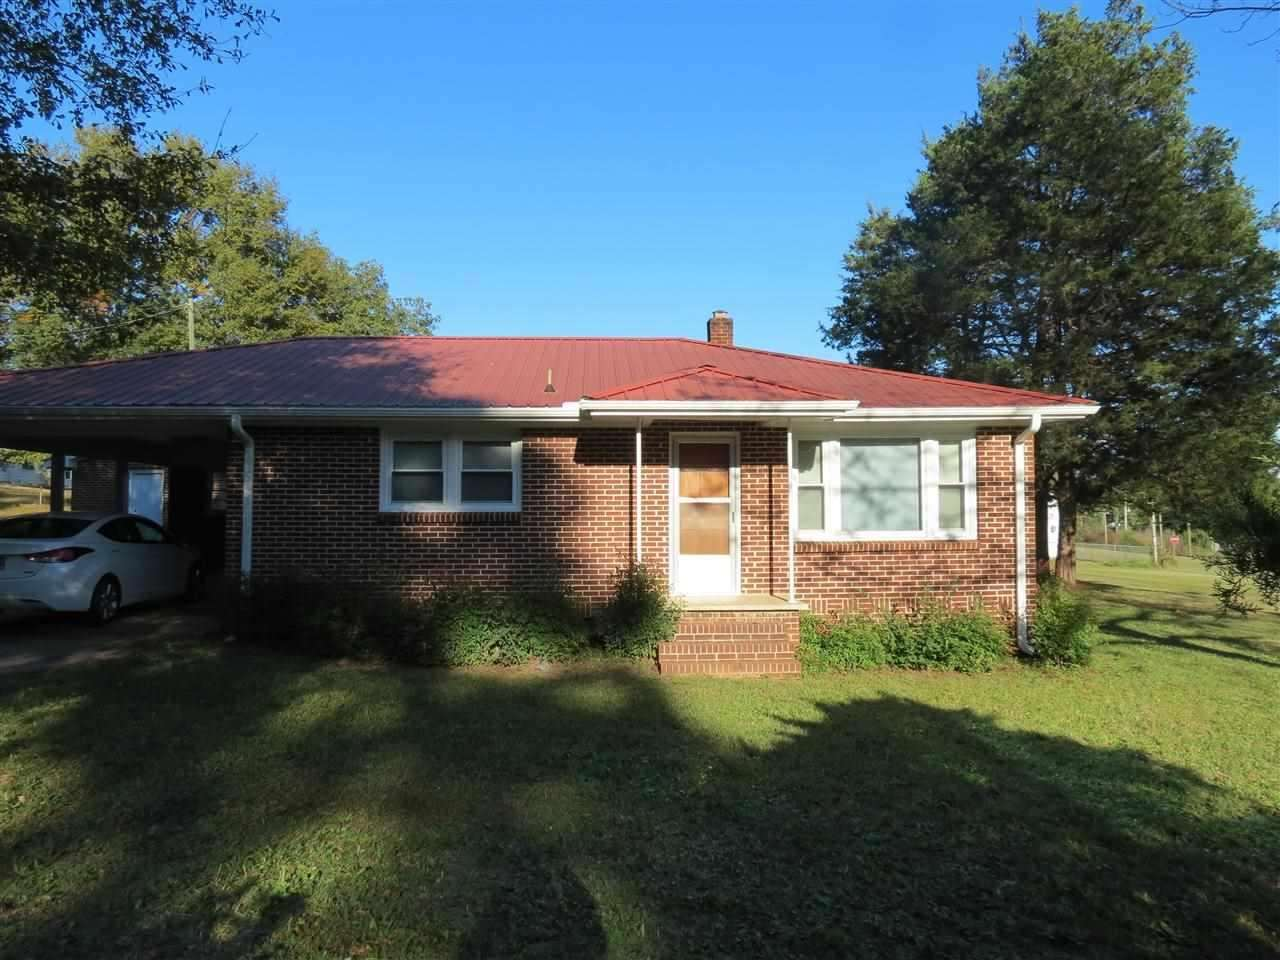 Rental Homes for Rent, ListingId:29472993, location: 111 Coleman St Seneca 29678